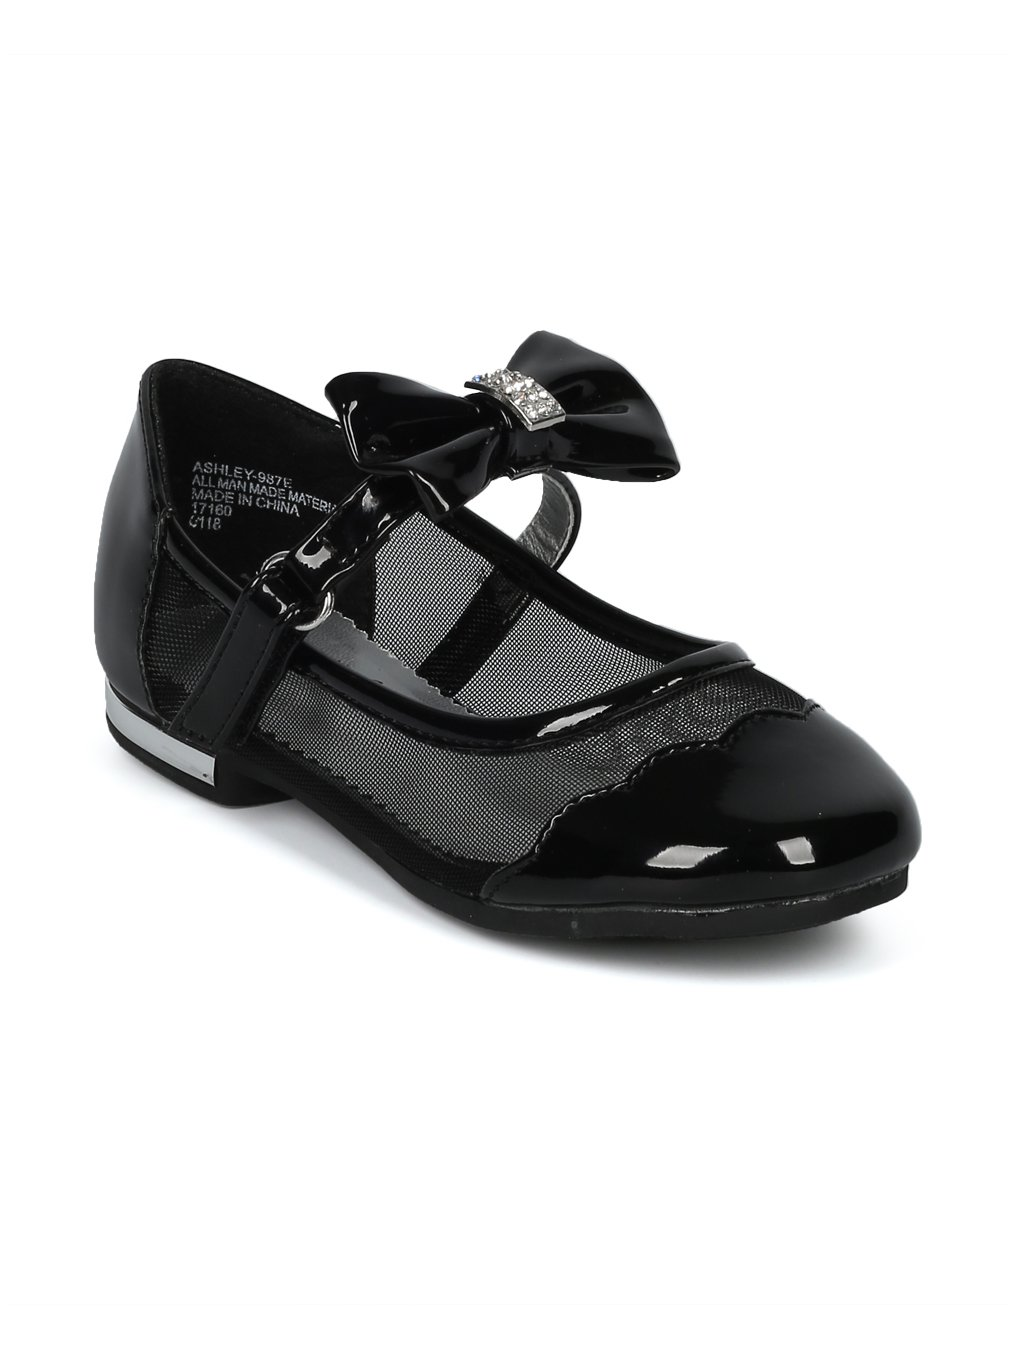 Alrisco Girls Mesh Panel Bow Tie Mary Jane Ballet Flat HH13 - Black Patent (Size: Big Kid 3)